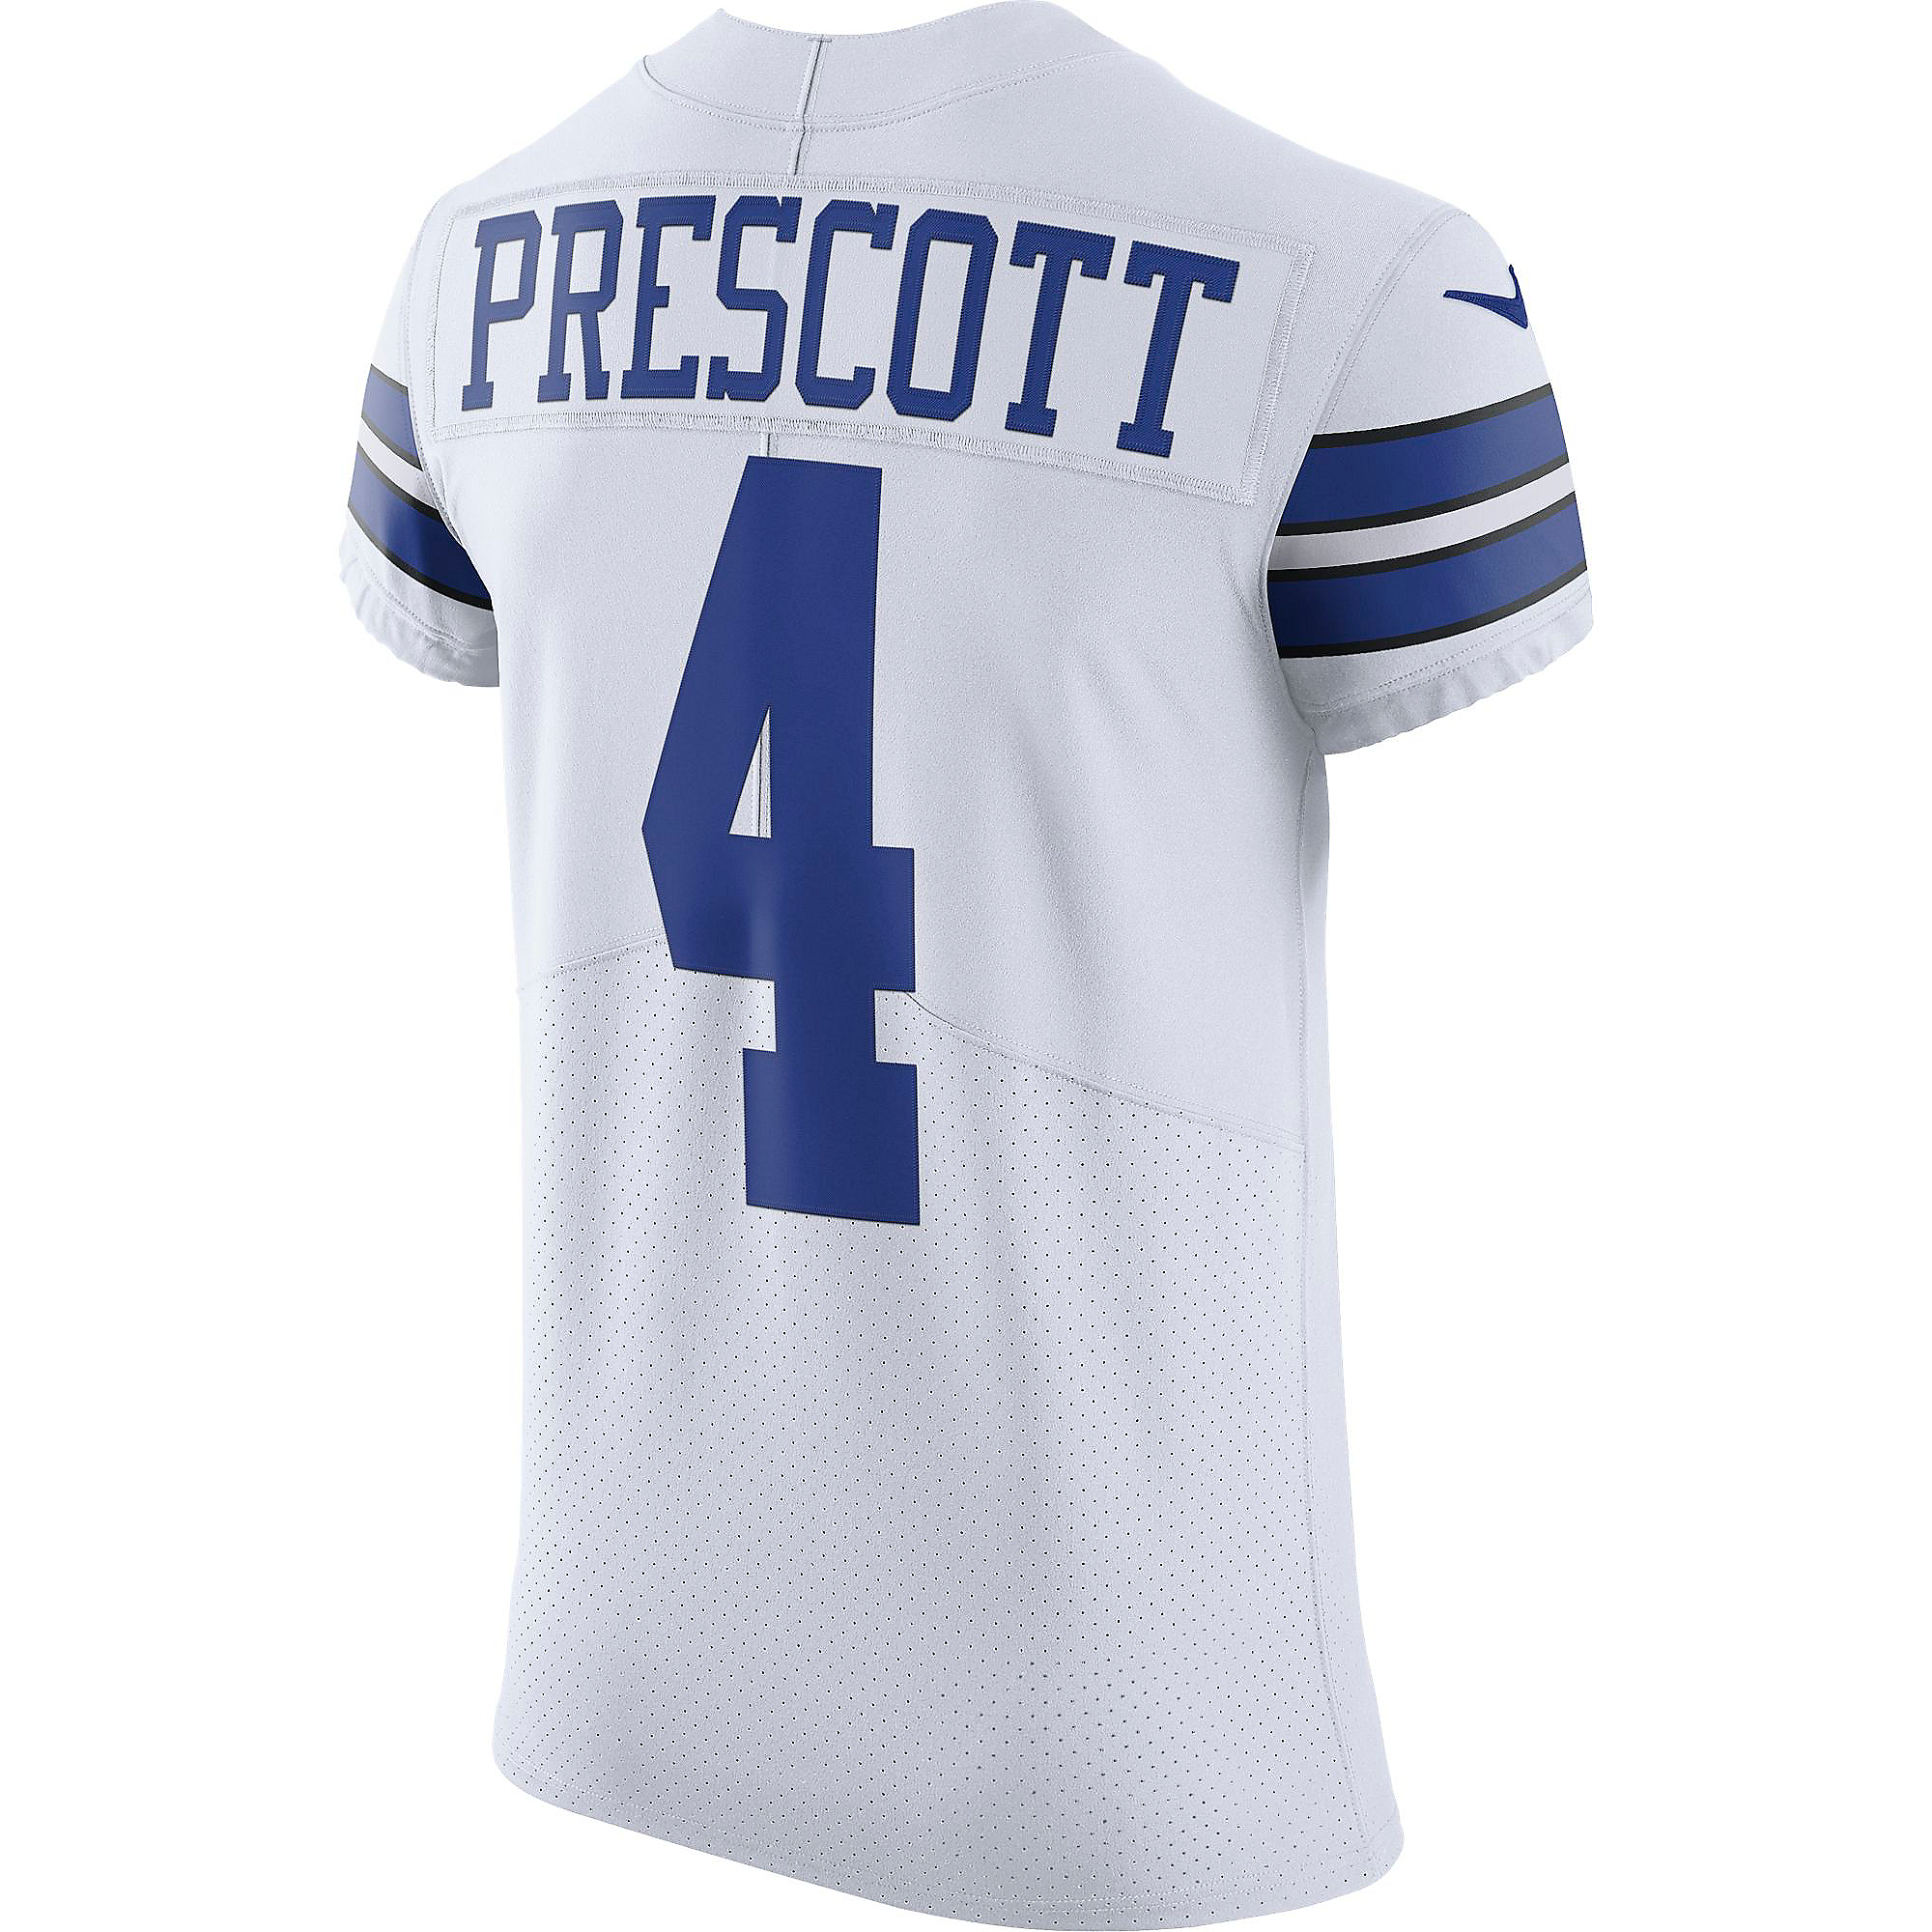 6132ad13f54 Dallas Cowboys Dak Prescott  4 Nike Vapor Untouchable White Elite Authentic  Jersey